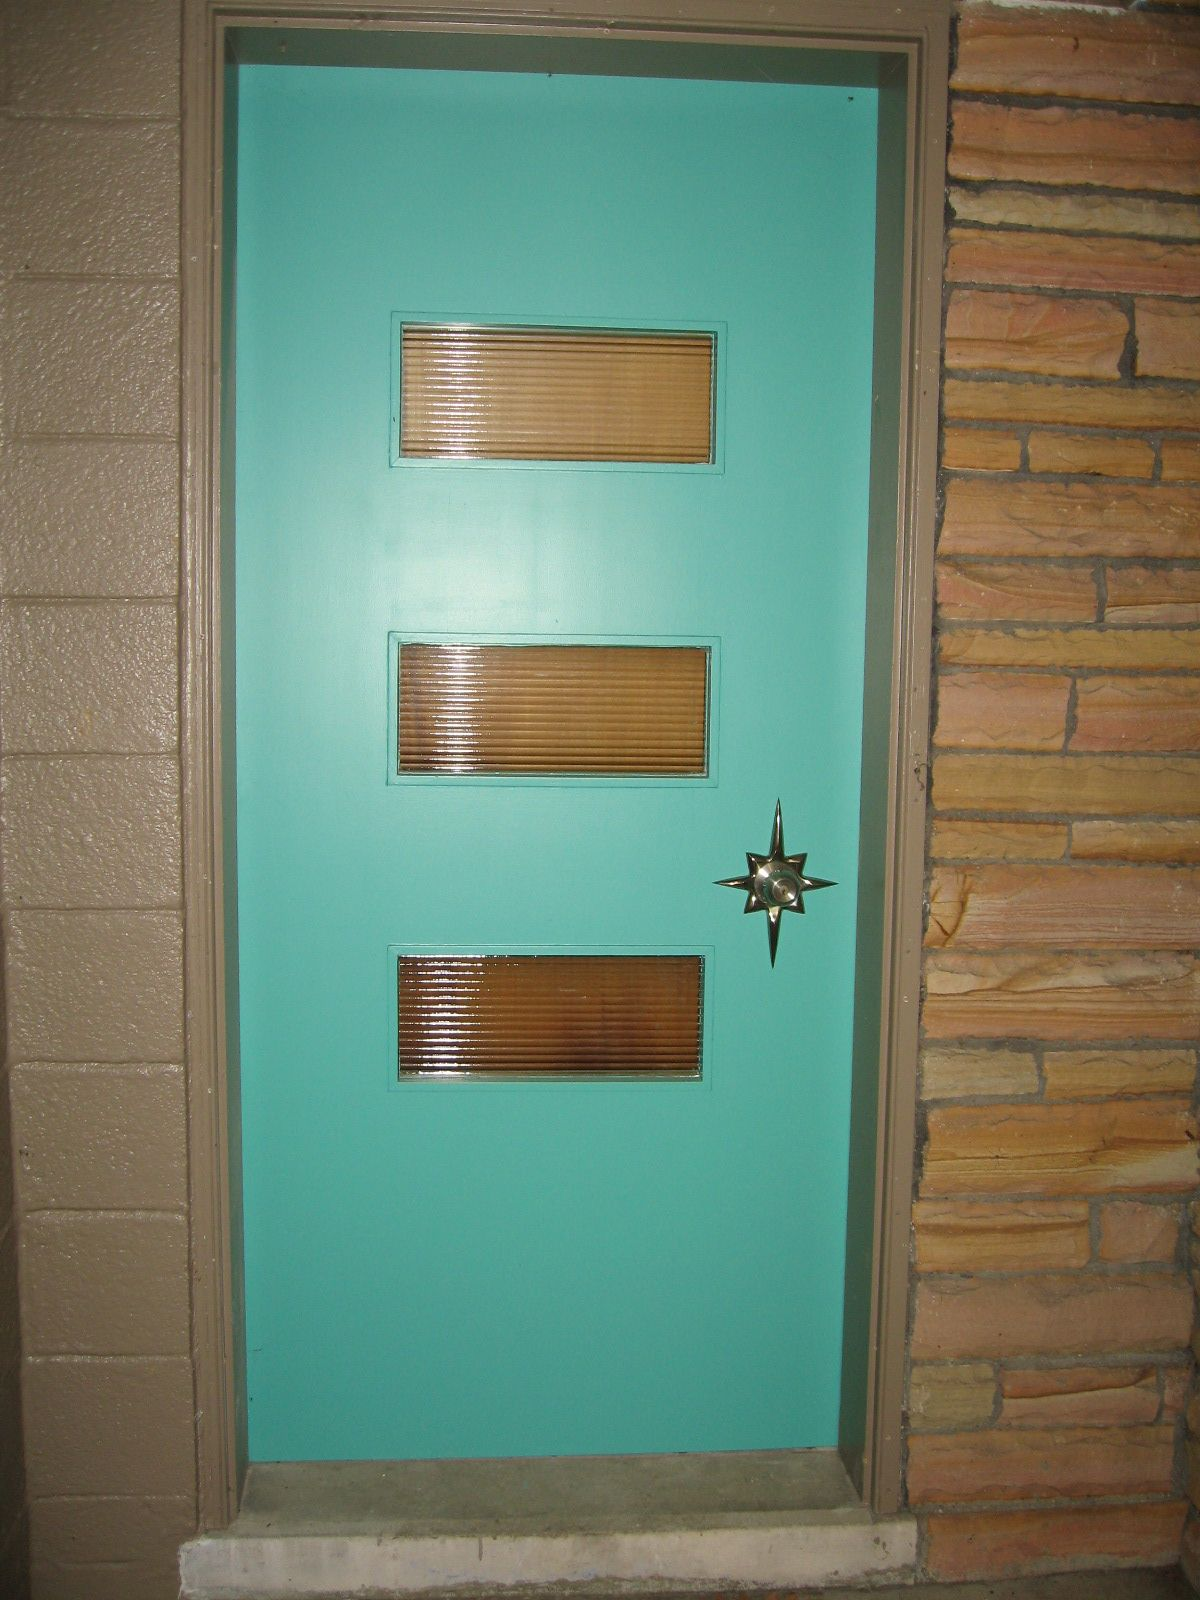 Mid century modern front doors - 38 Pretty Front Doors Upload A Photo Of Your Front Door Too